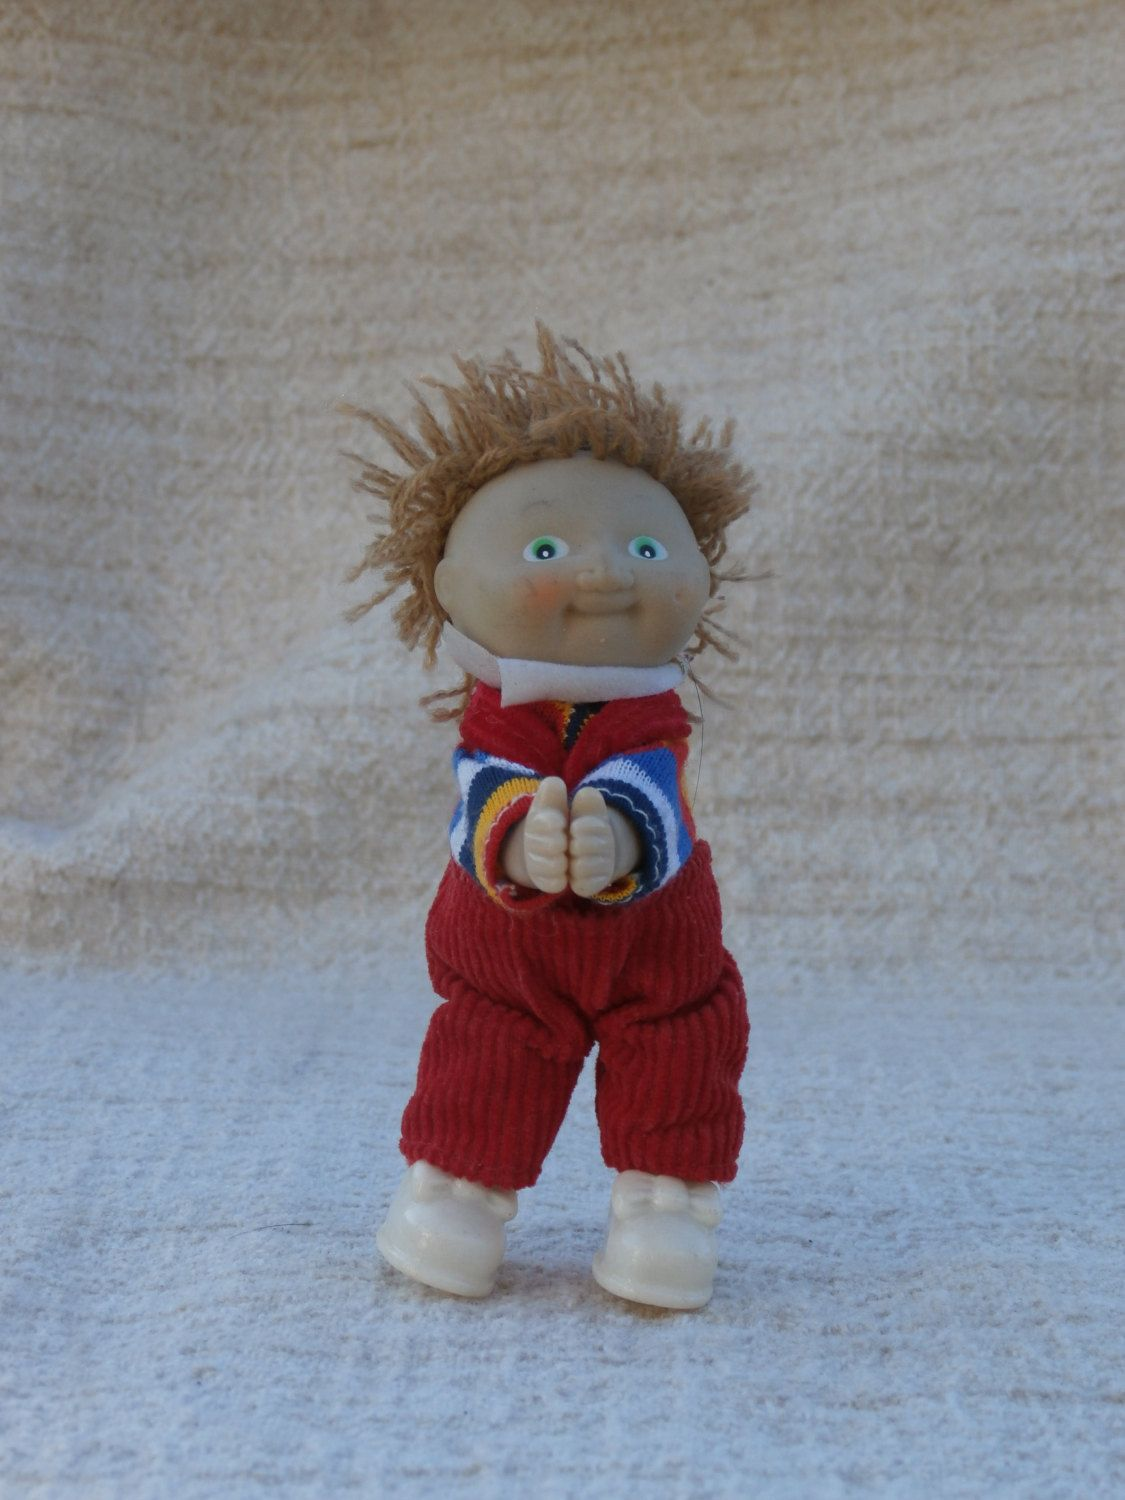 1980s Era Cabbage Patch Kids Doll Clip On Toy Figure Brown Etsy Cabbage Patch Kids Cabbage Patch Kids Dolls Cabbage Patch